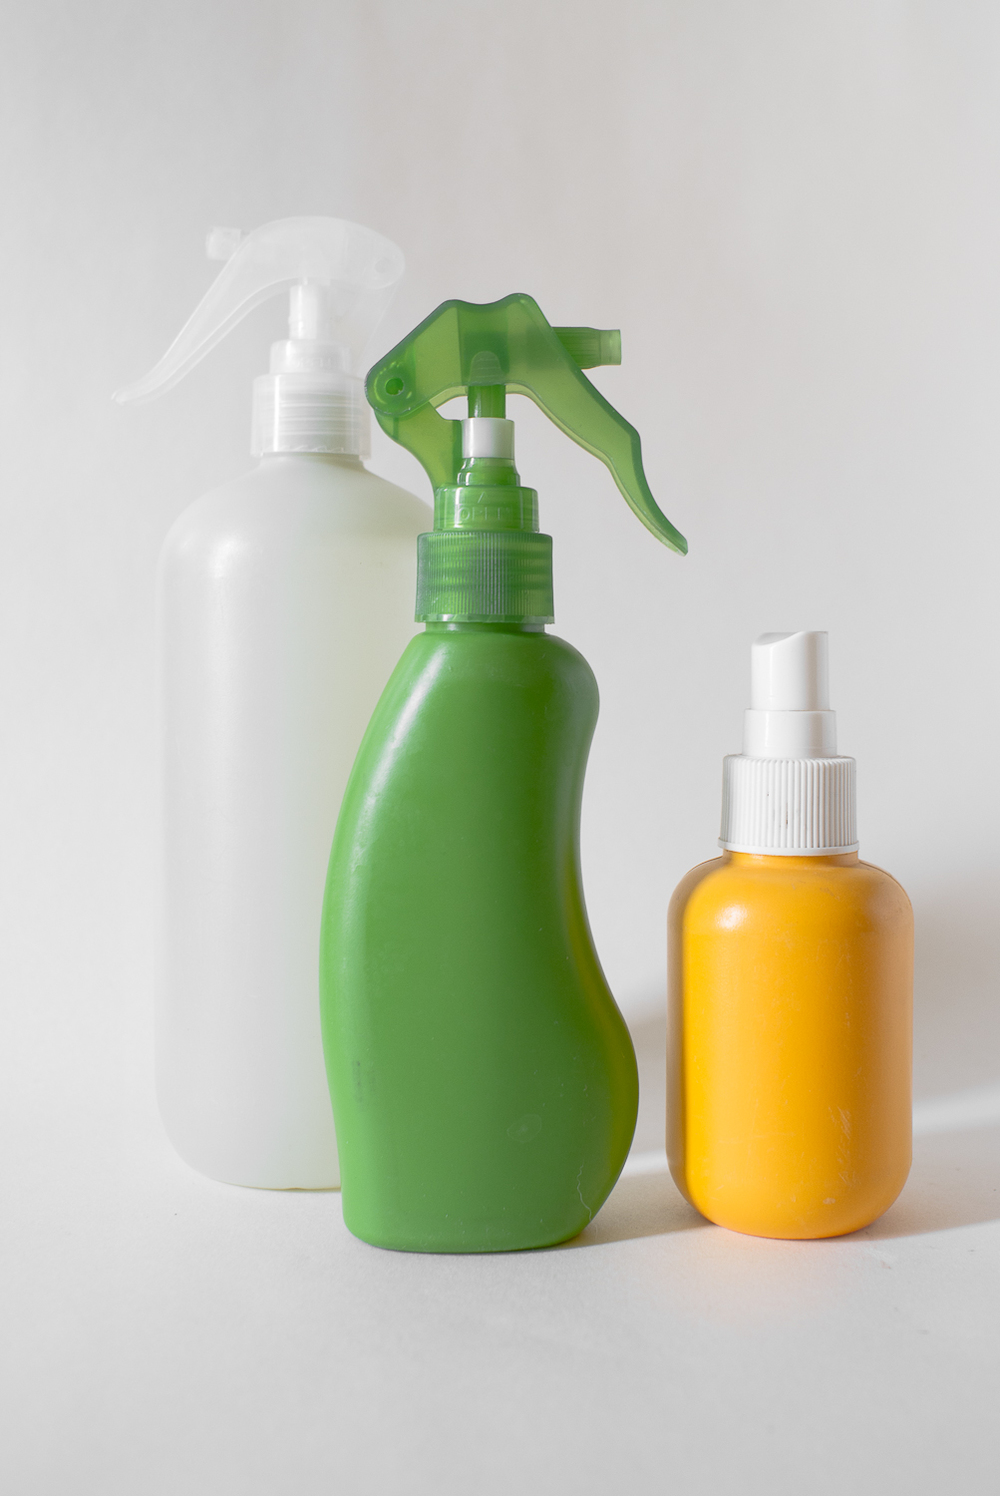 Three label-free sprayers that once held non-toxic substances for household or cosmetic use. (Depending on the adhesive used by the manufacturer, removing the label is sometimes a job for a heavy-duty solvent, such as lighter fluid.)